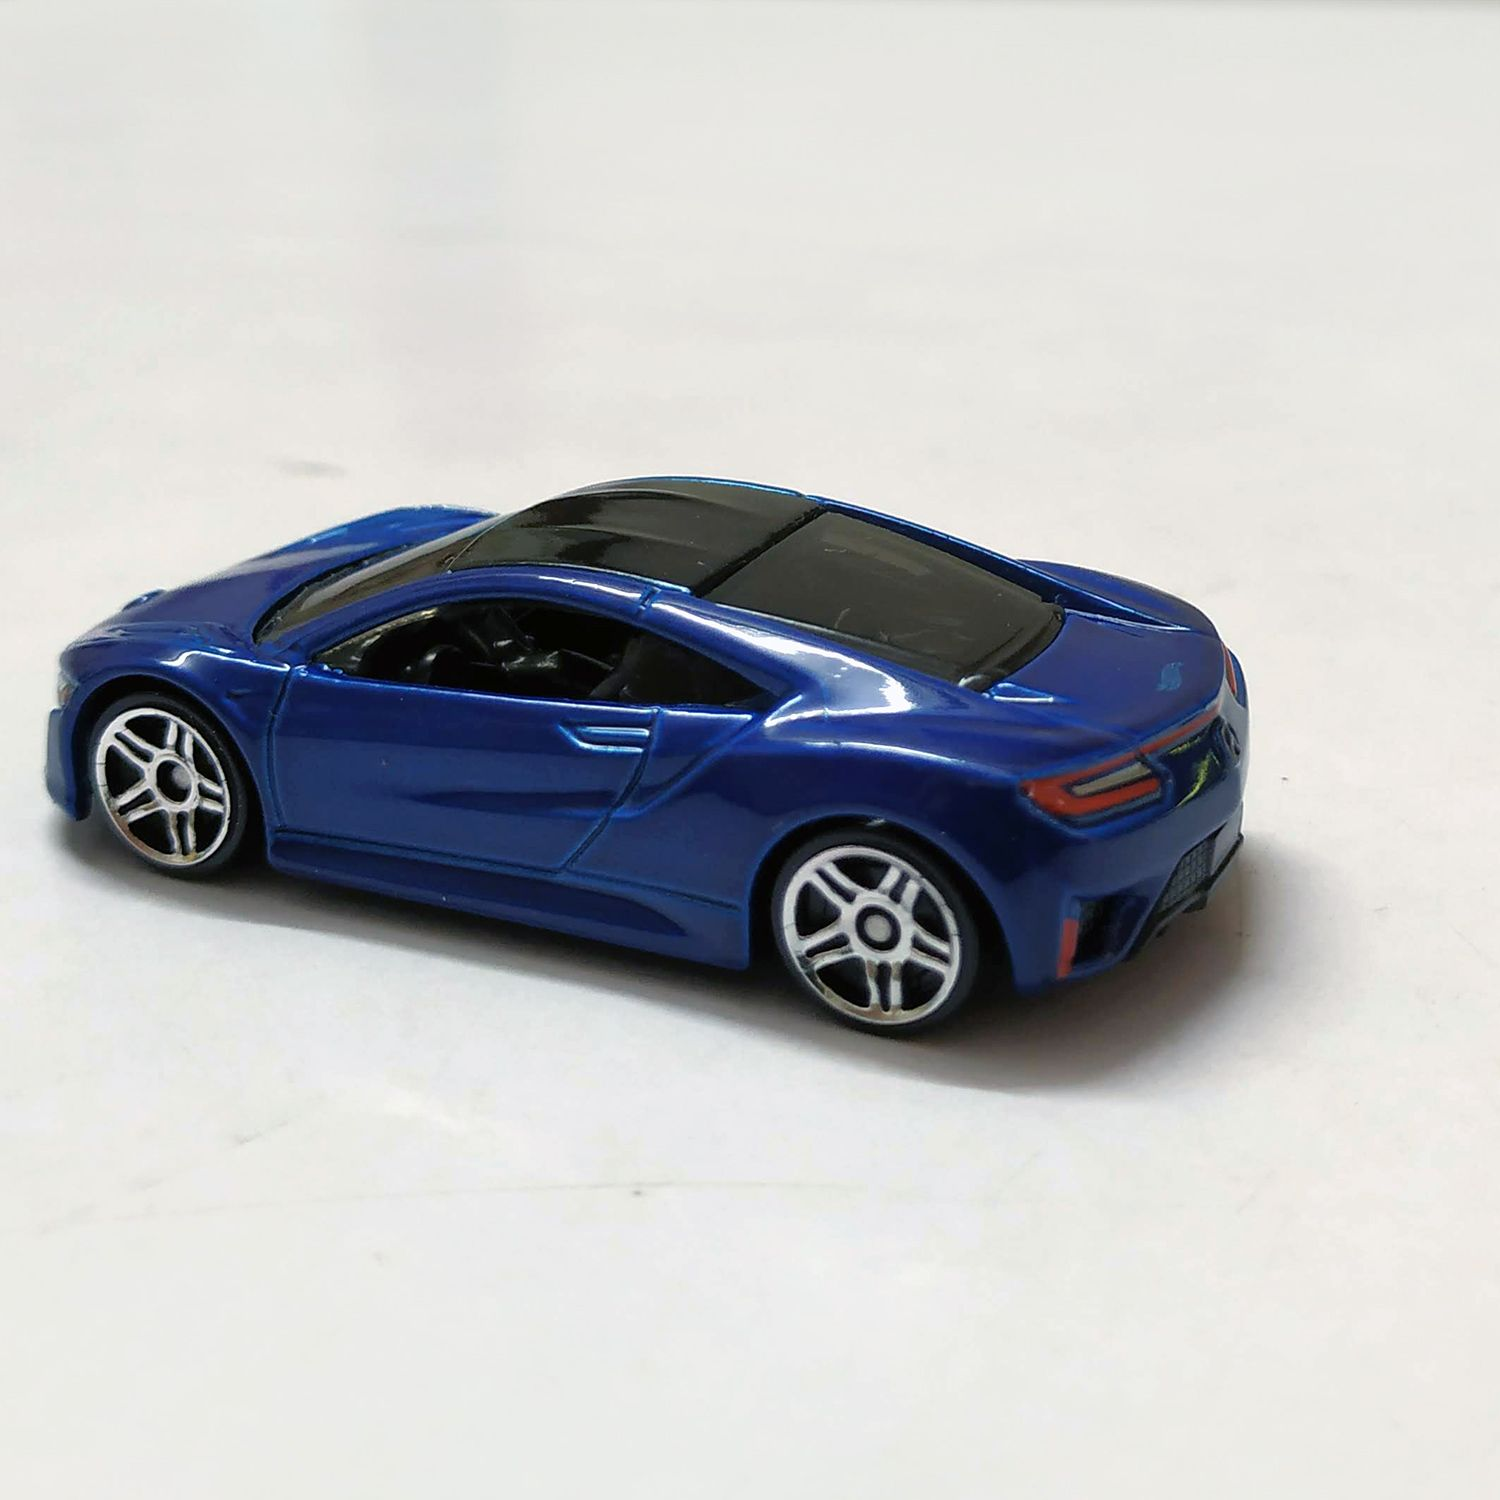 Hot Wheels Acura NSX Mainline Scale Model